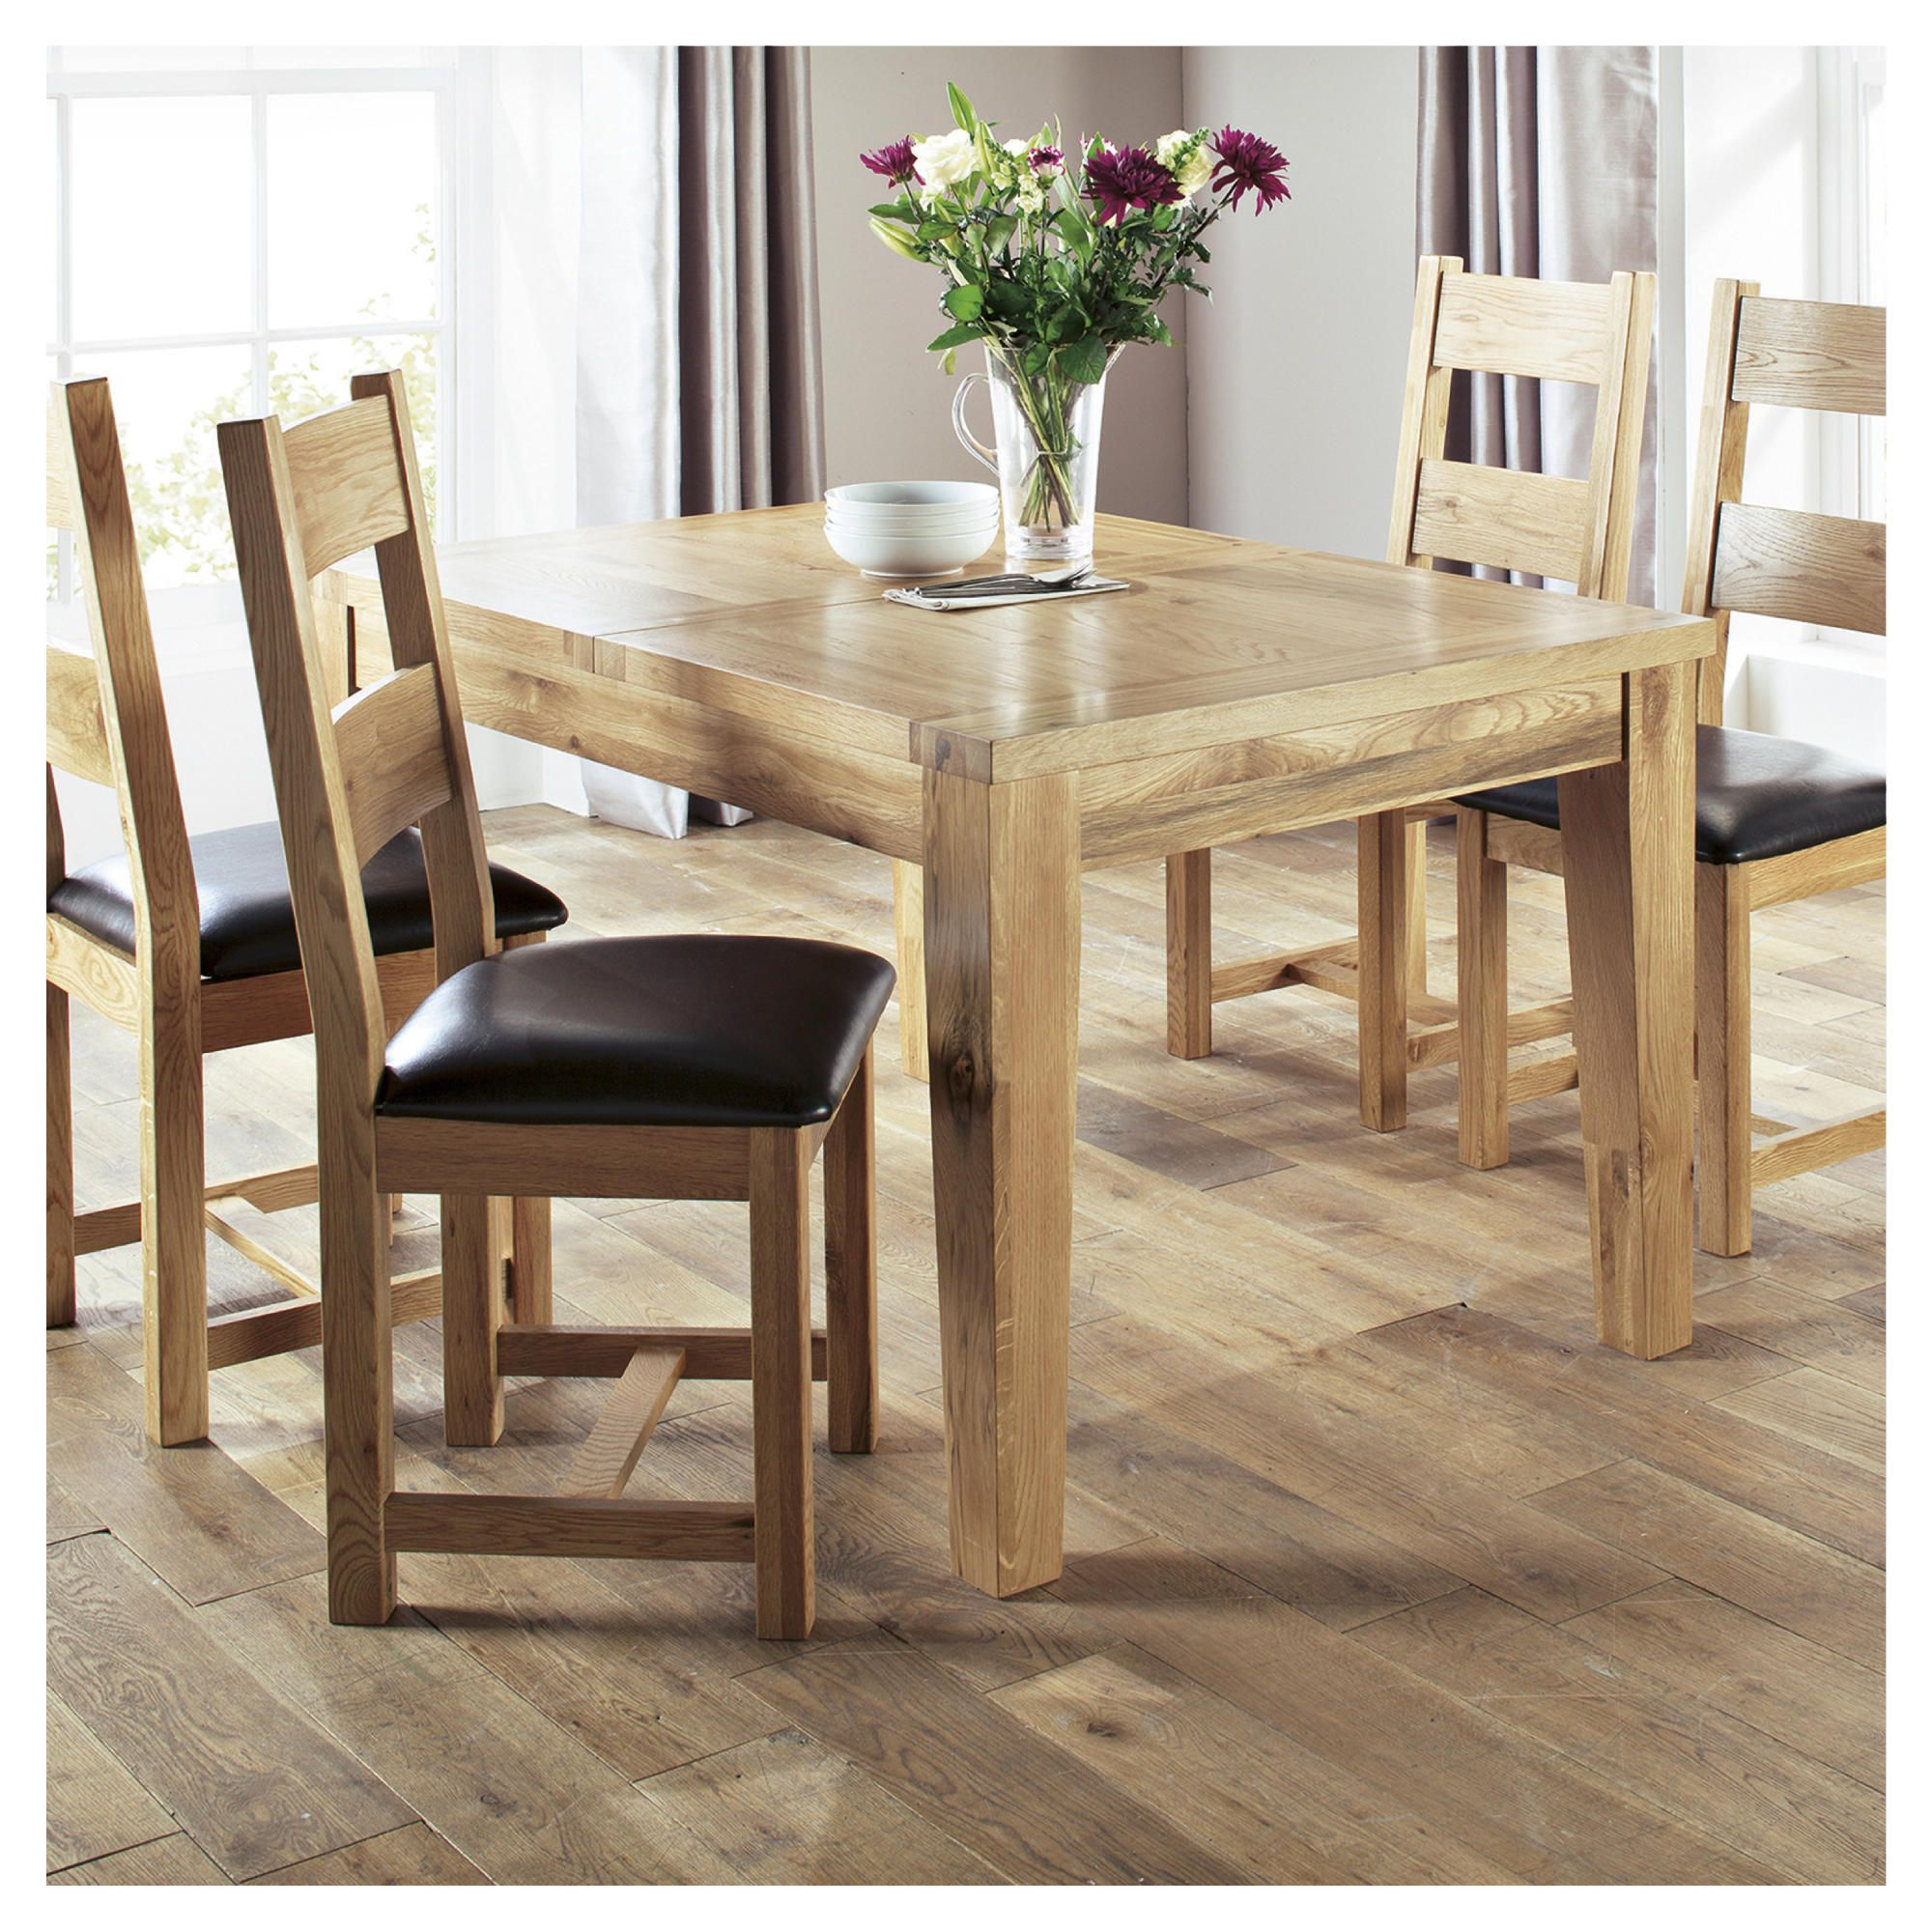 Tesco Java Dining Table and 4 Chairs